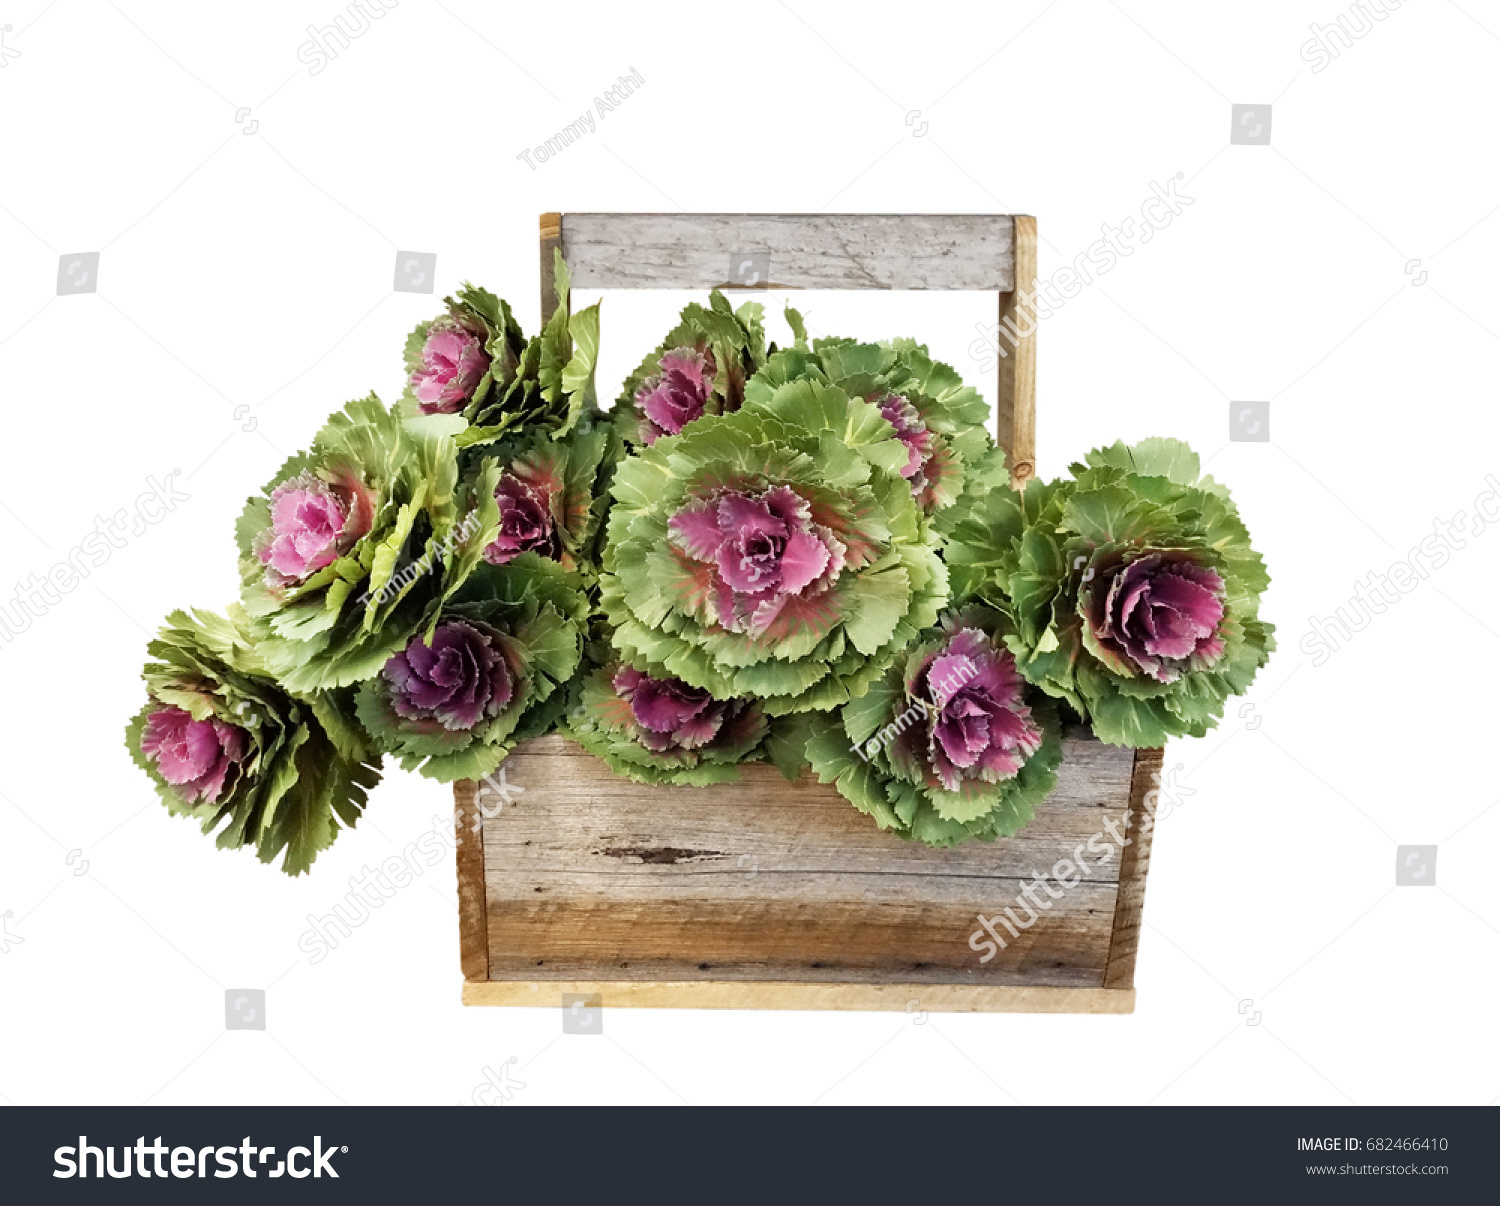 Kale Flower Cabbage Rose Flower Wooden Stock Photo Edit Now